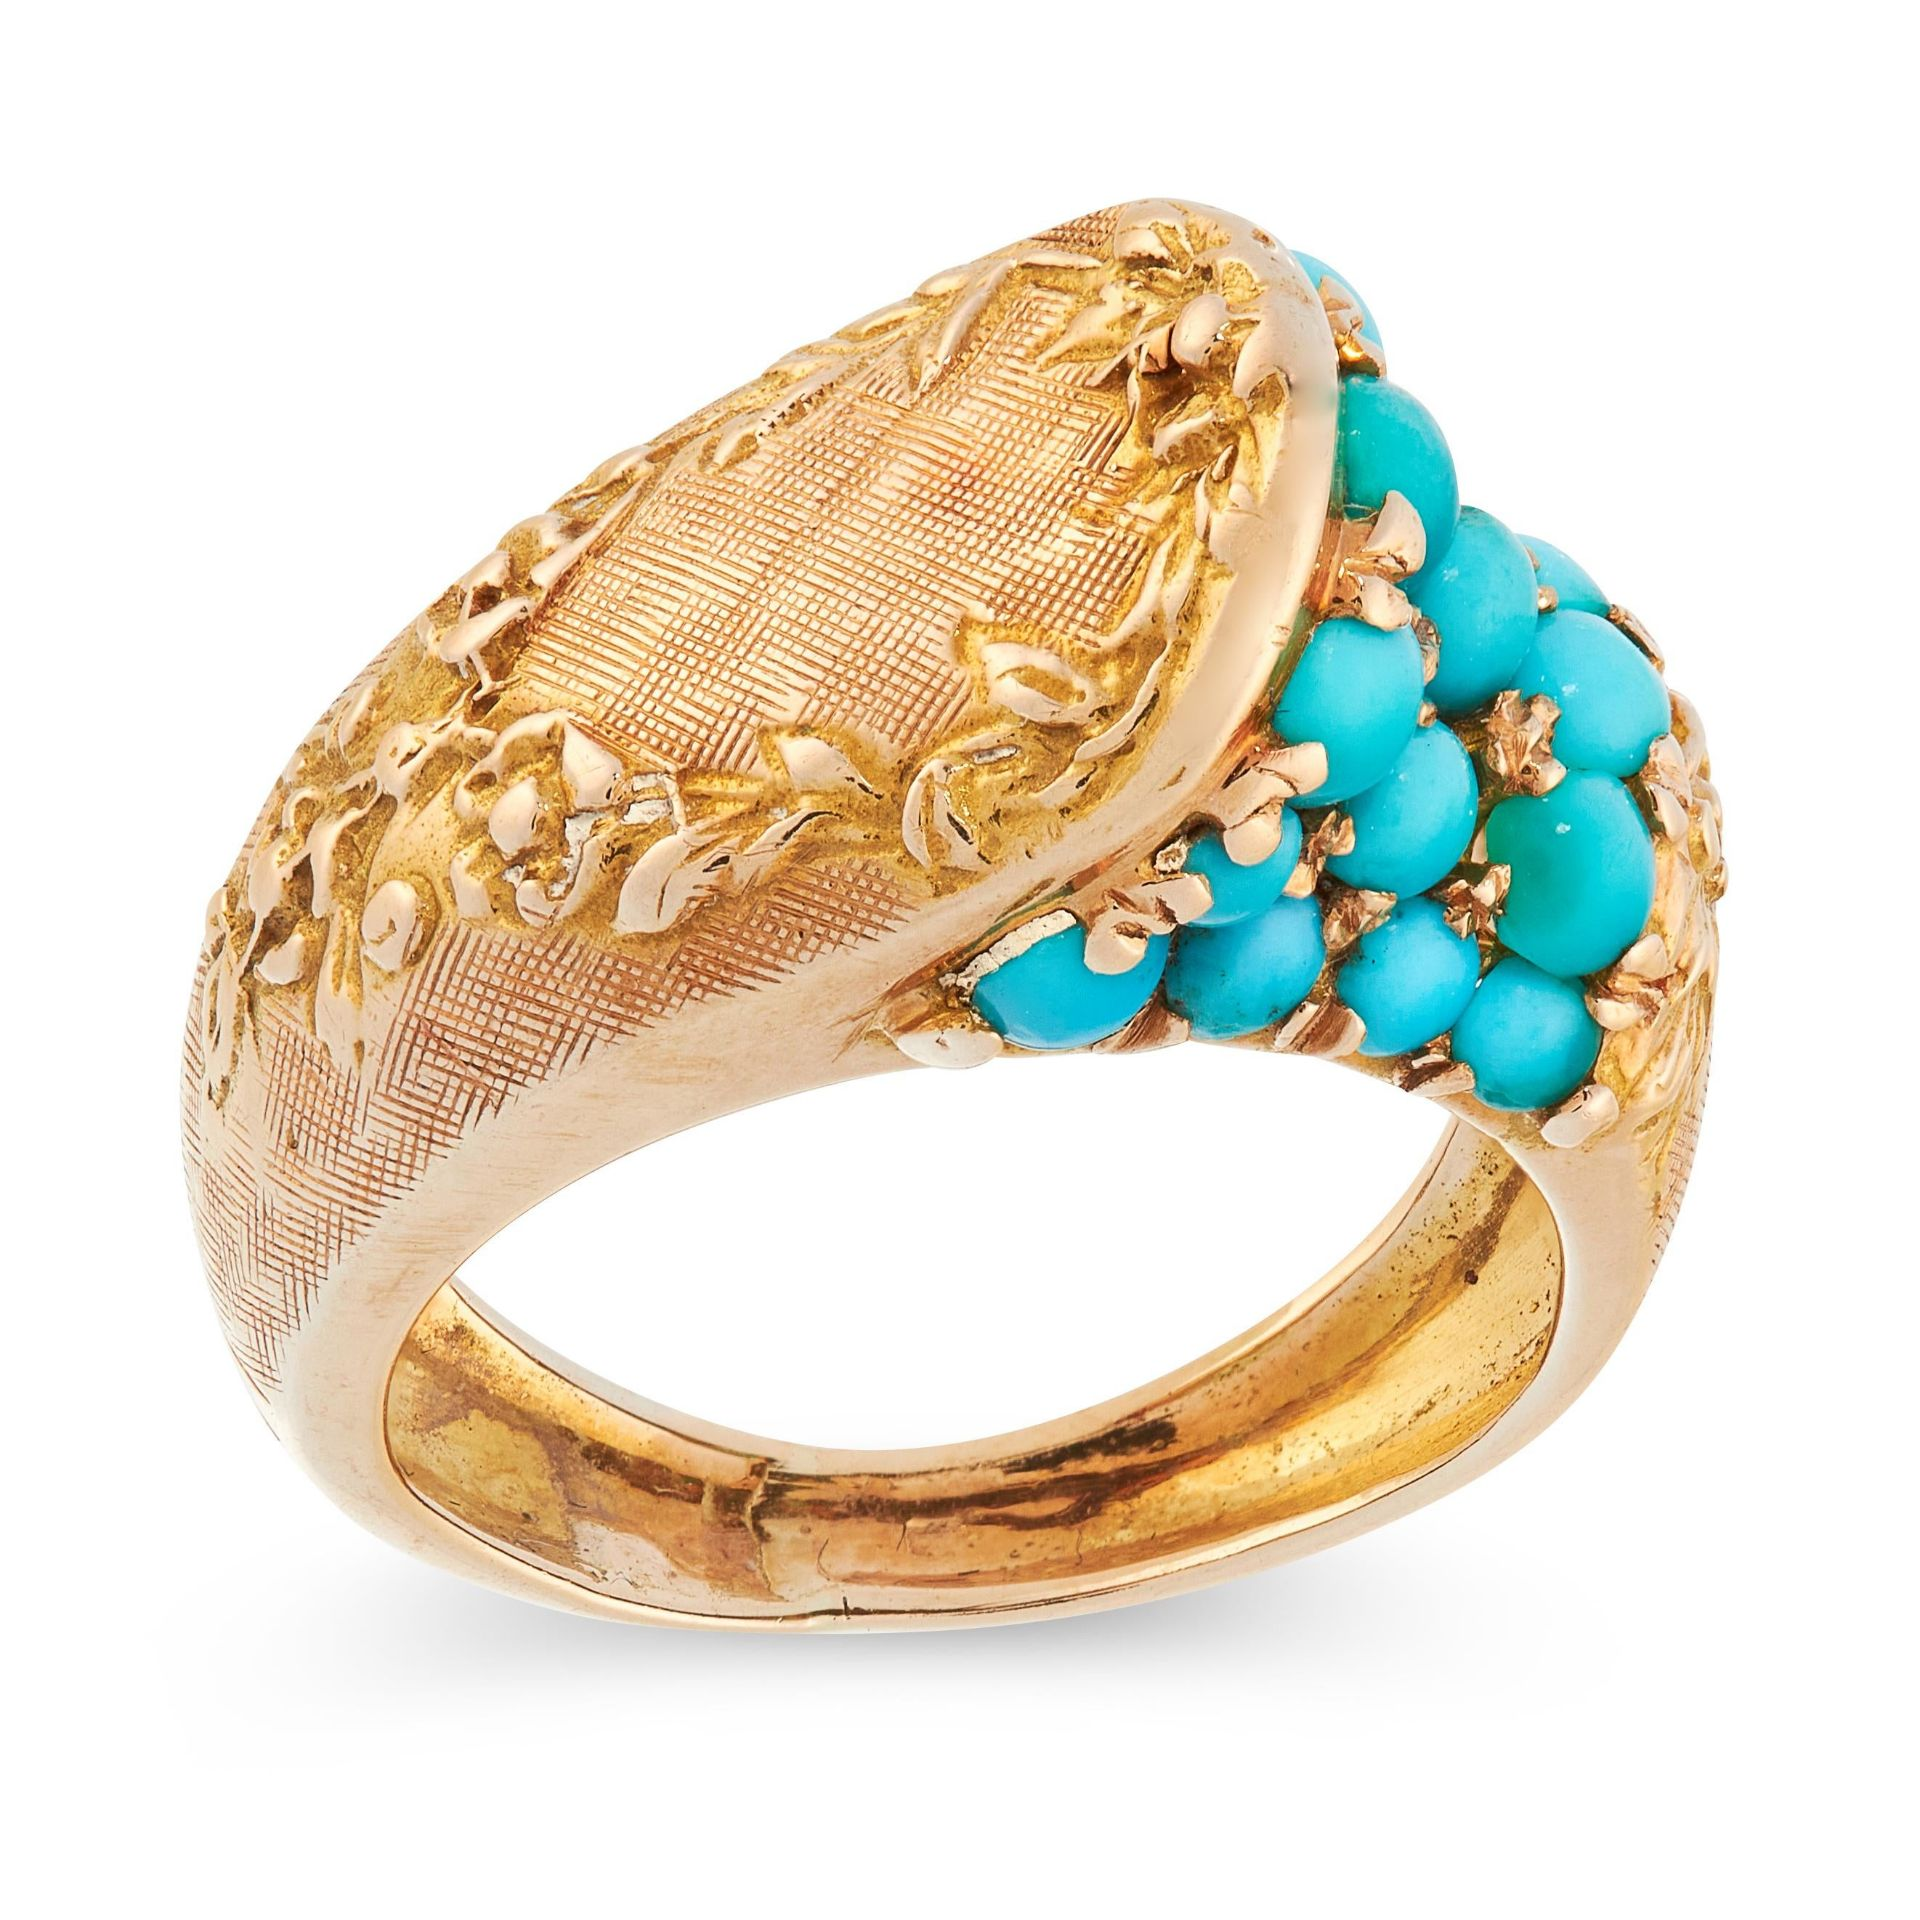 AN ANTIQUE TURQUOISE DRESS RING in 18ct yellow gold, the stylised body set with round cabochon